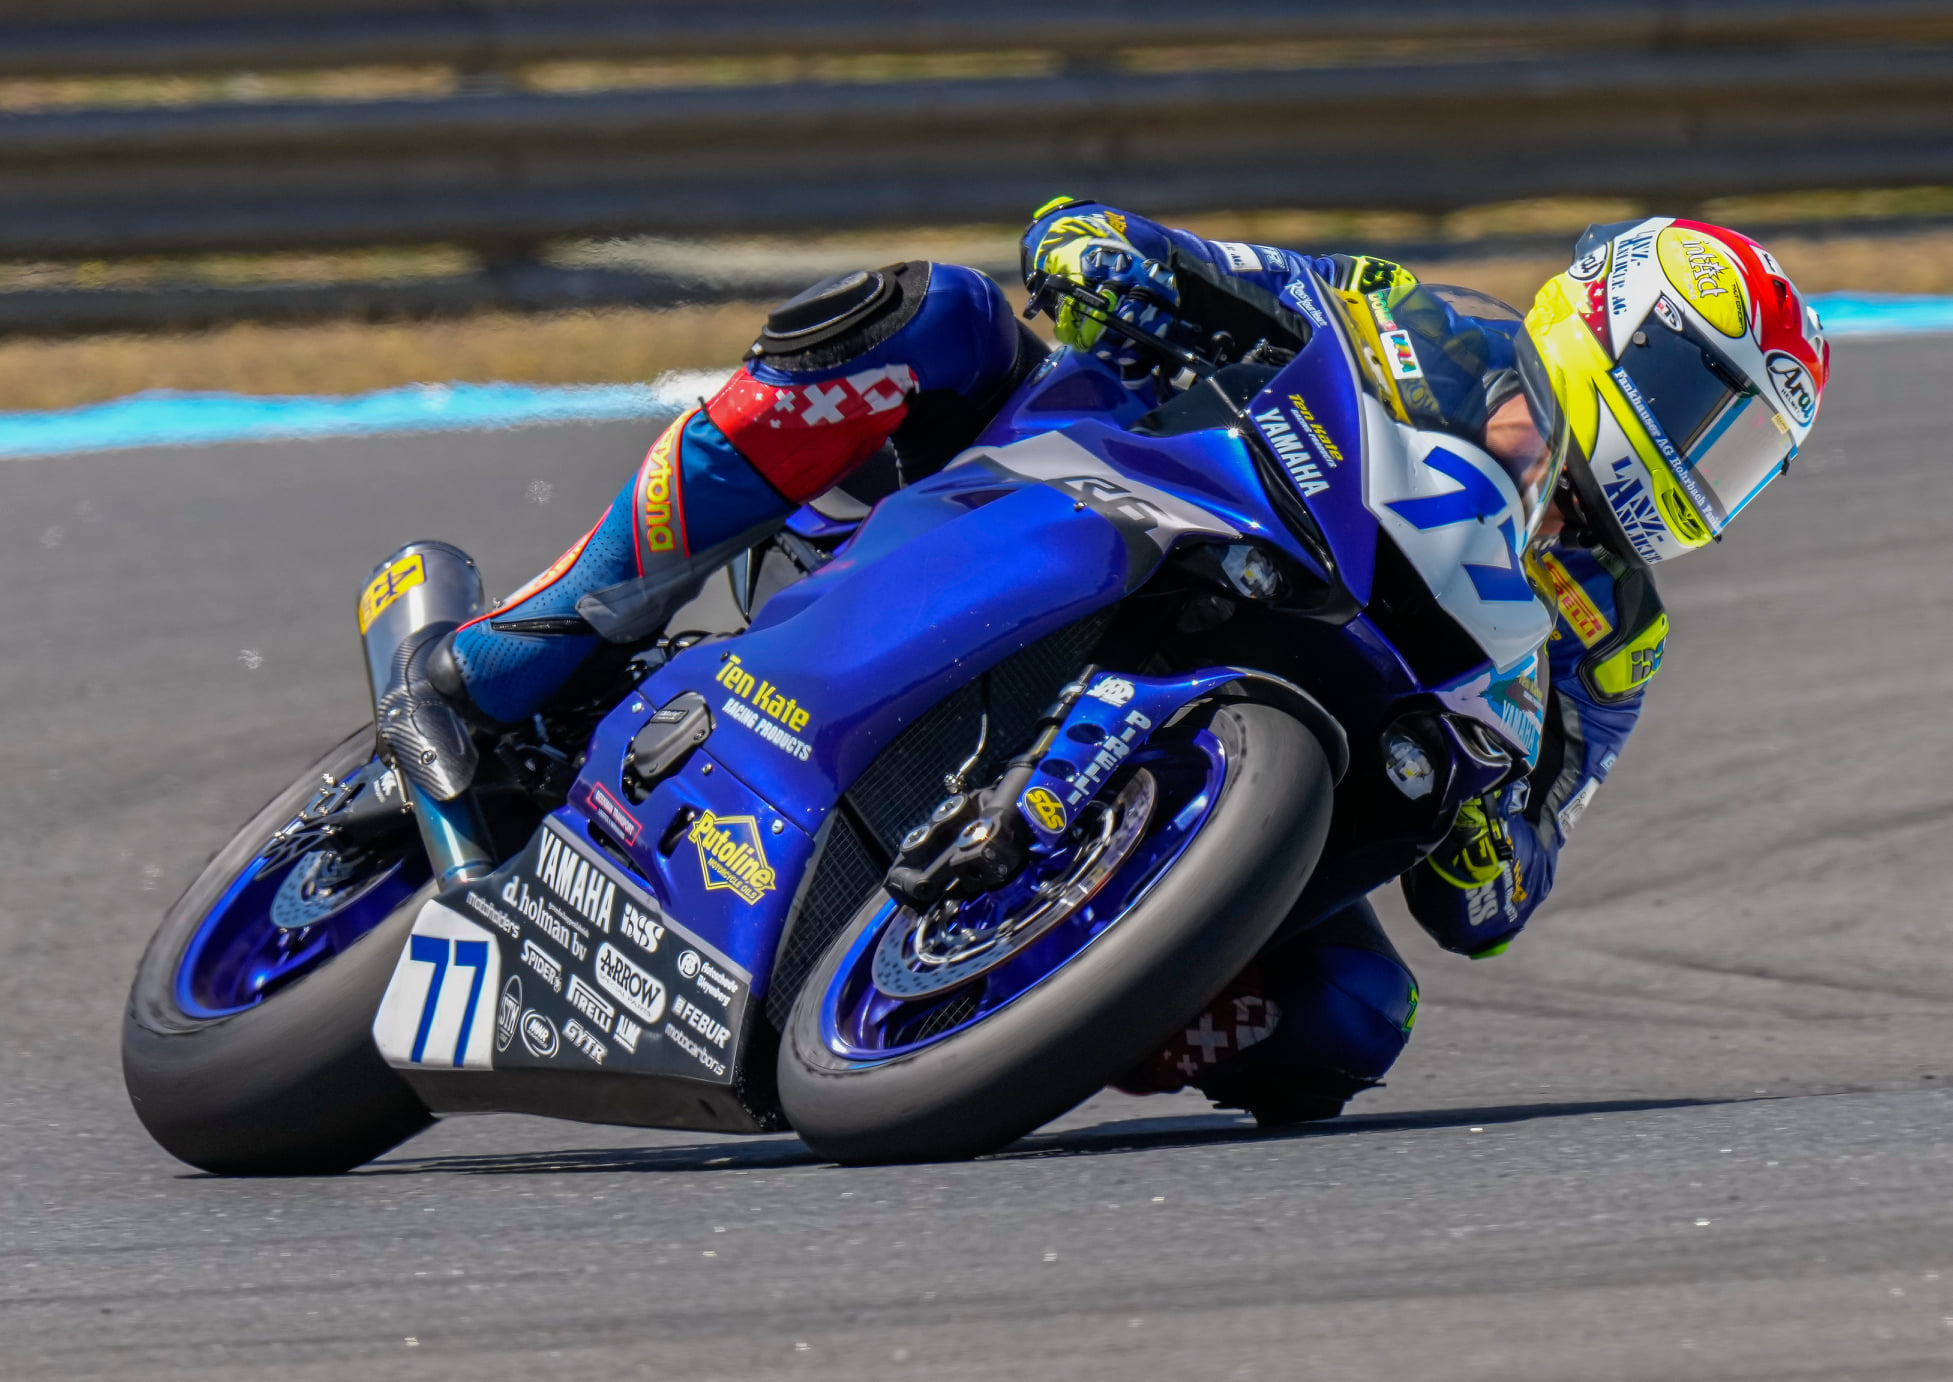 Aegerter takes the highlight, third Caricasulo - Motor Informed